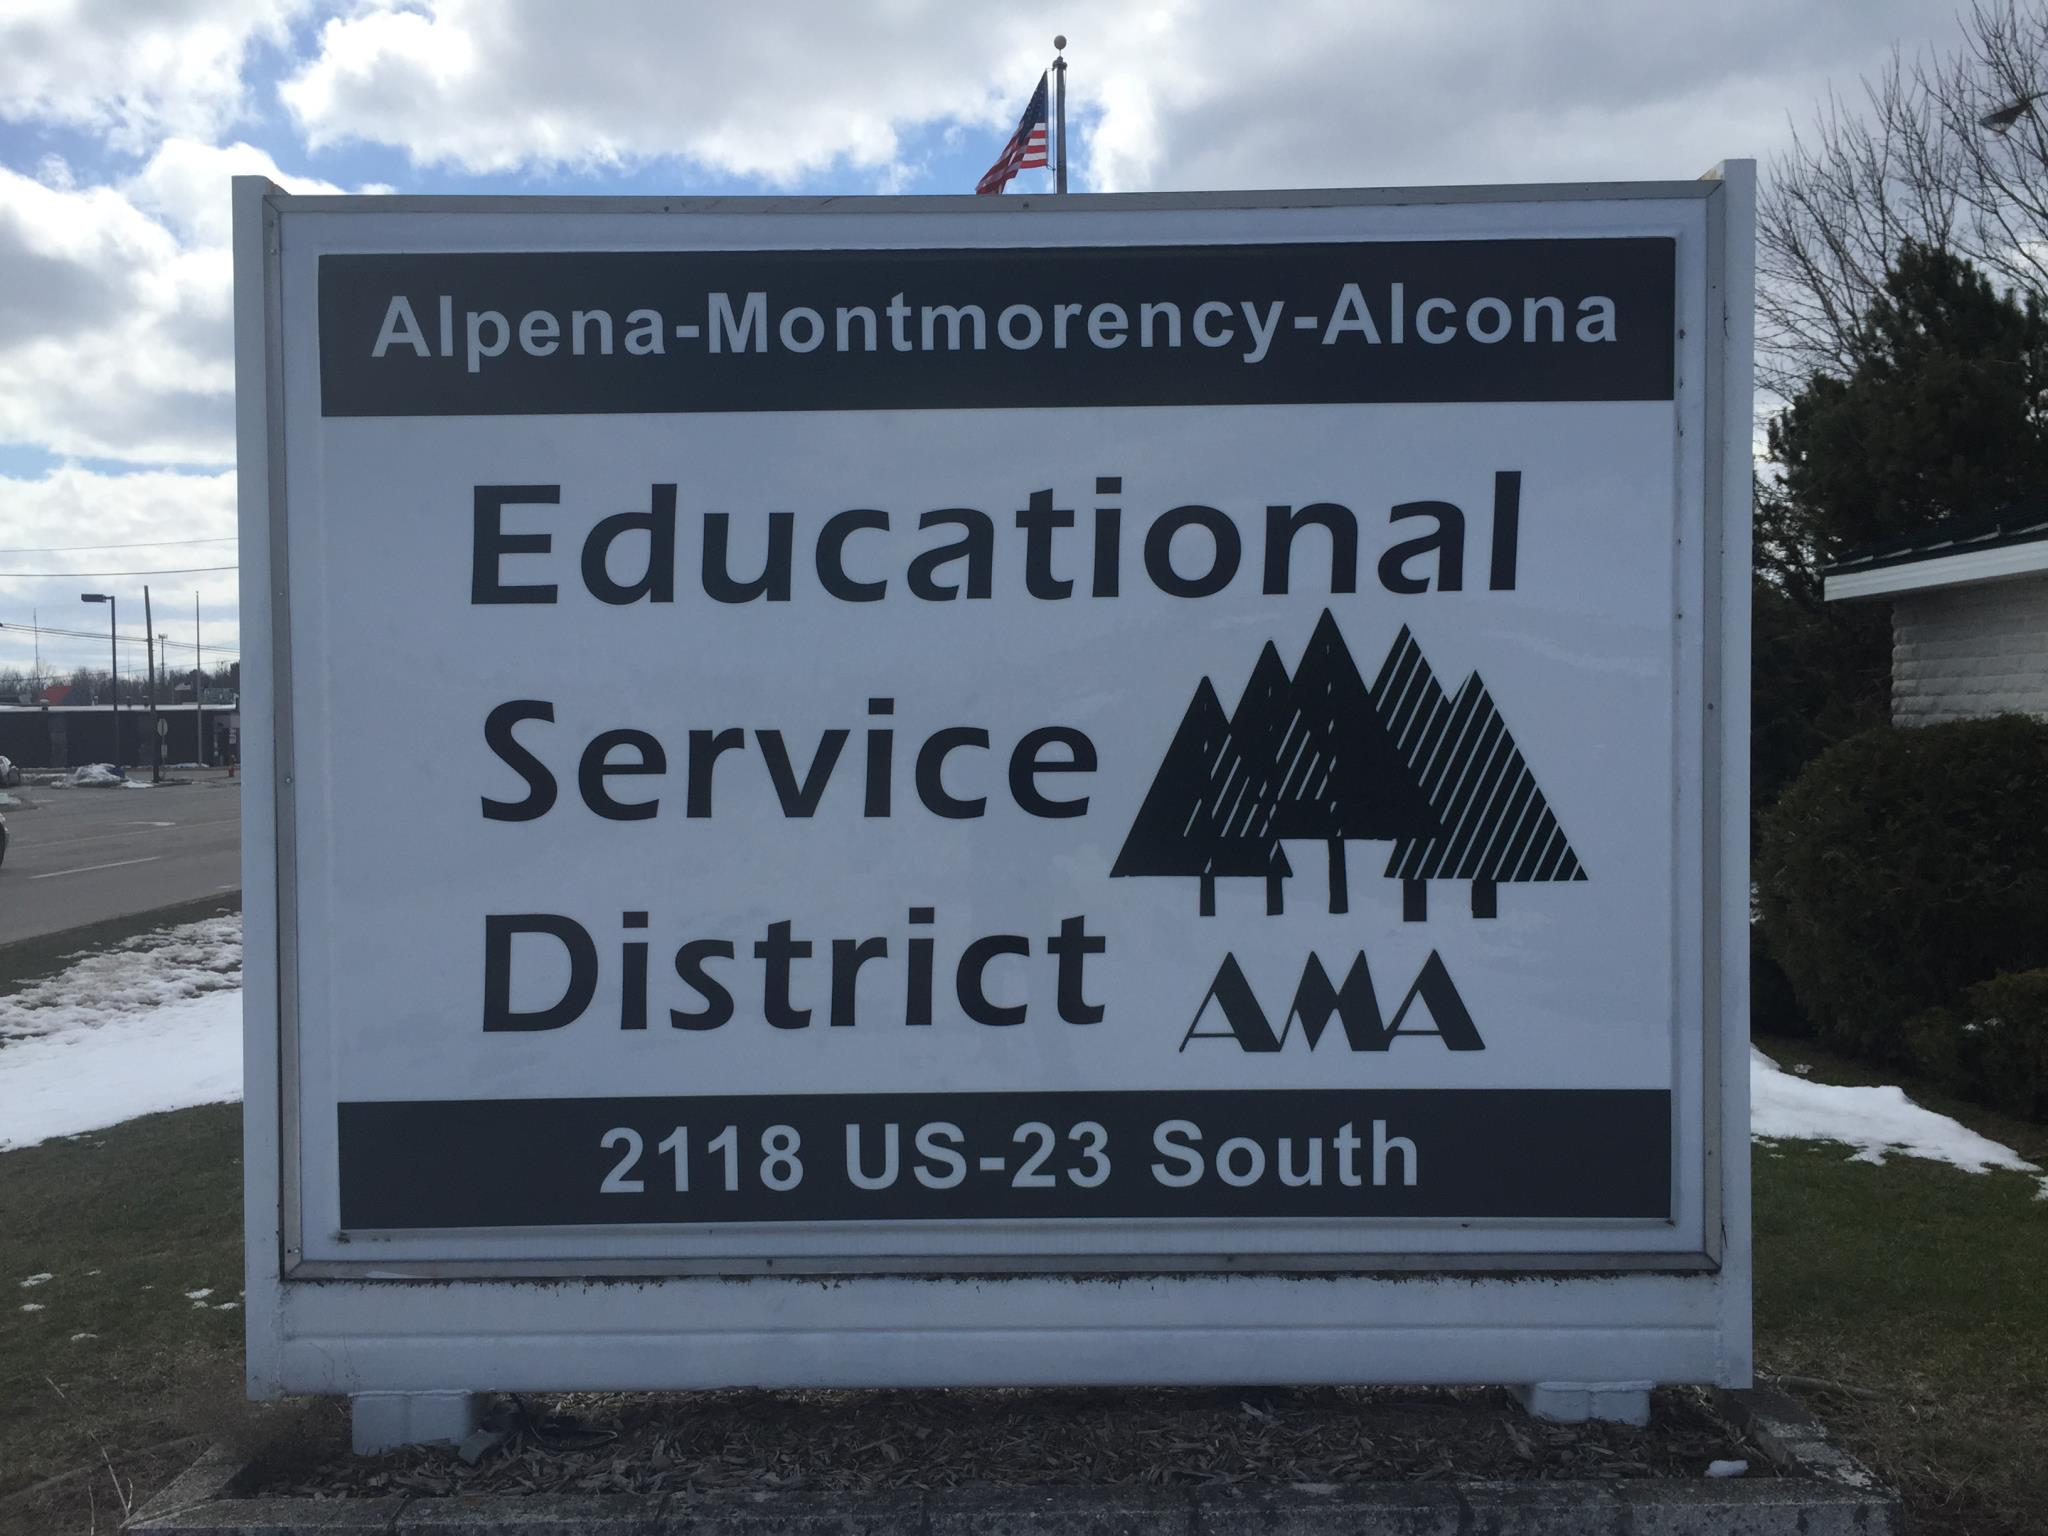 AMA Educational Service District